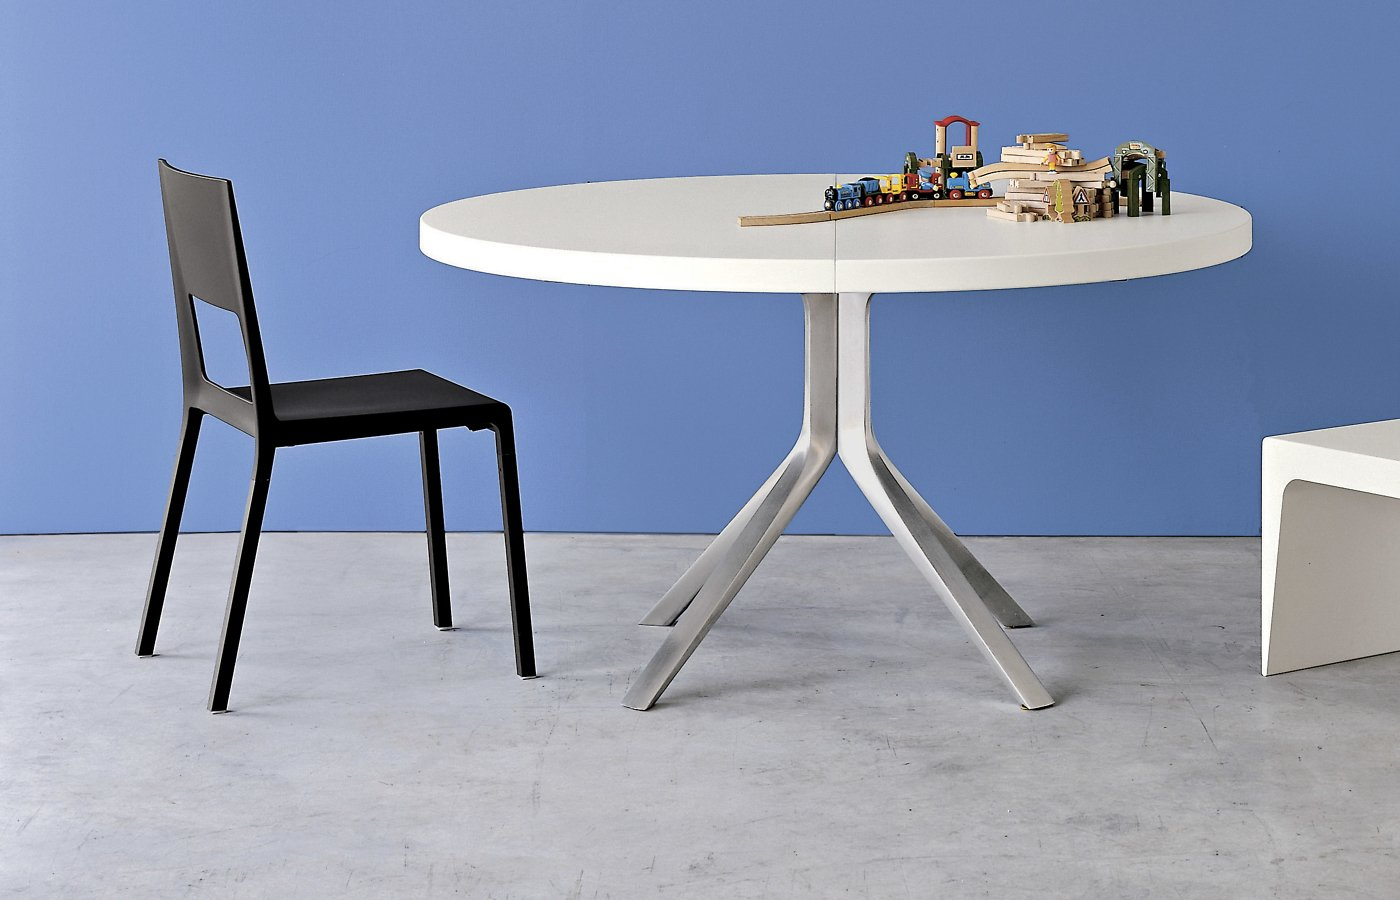 Face Chair from Kristalia, designed by Luca Nichetto